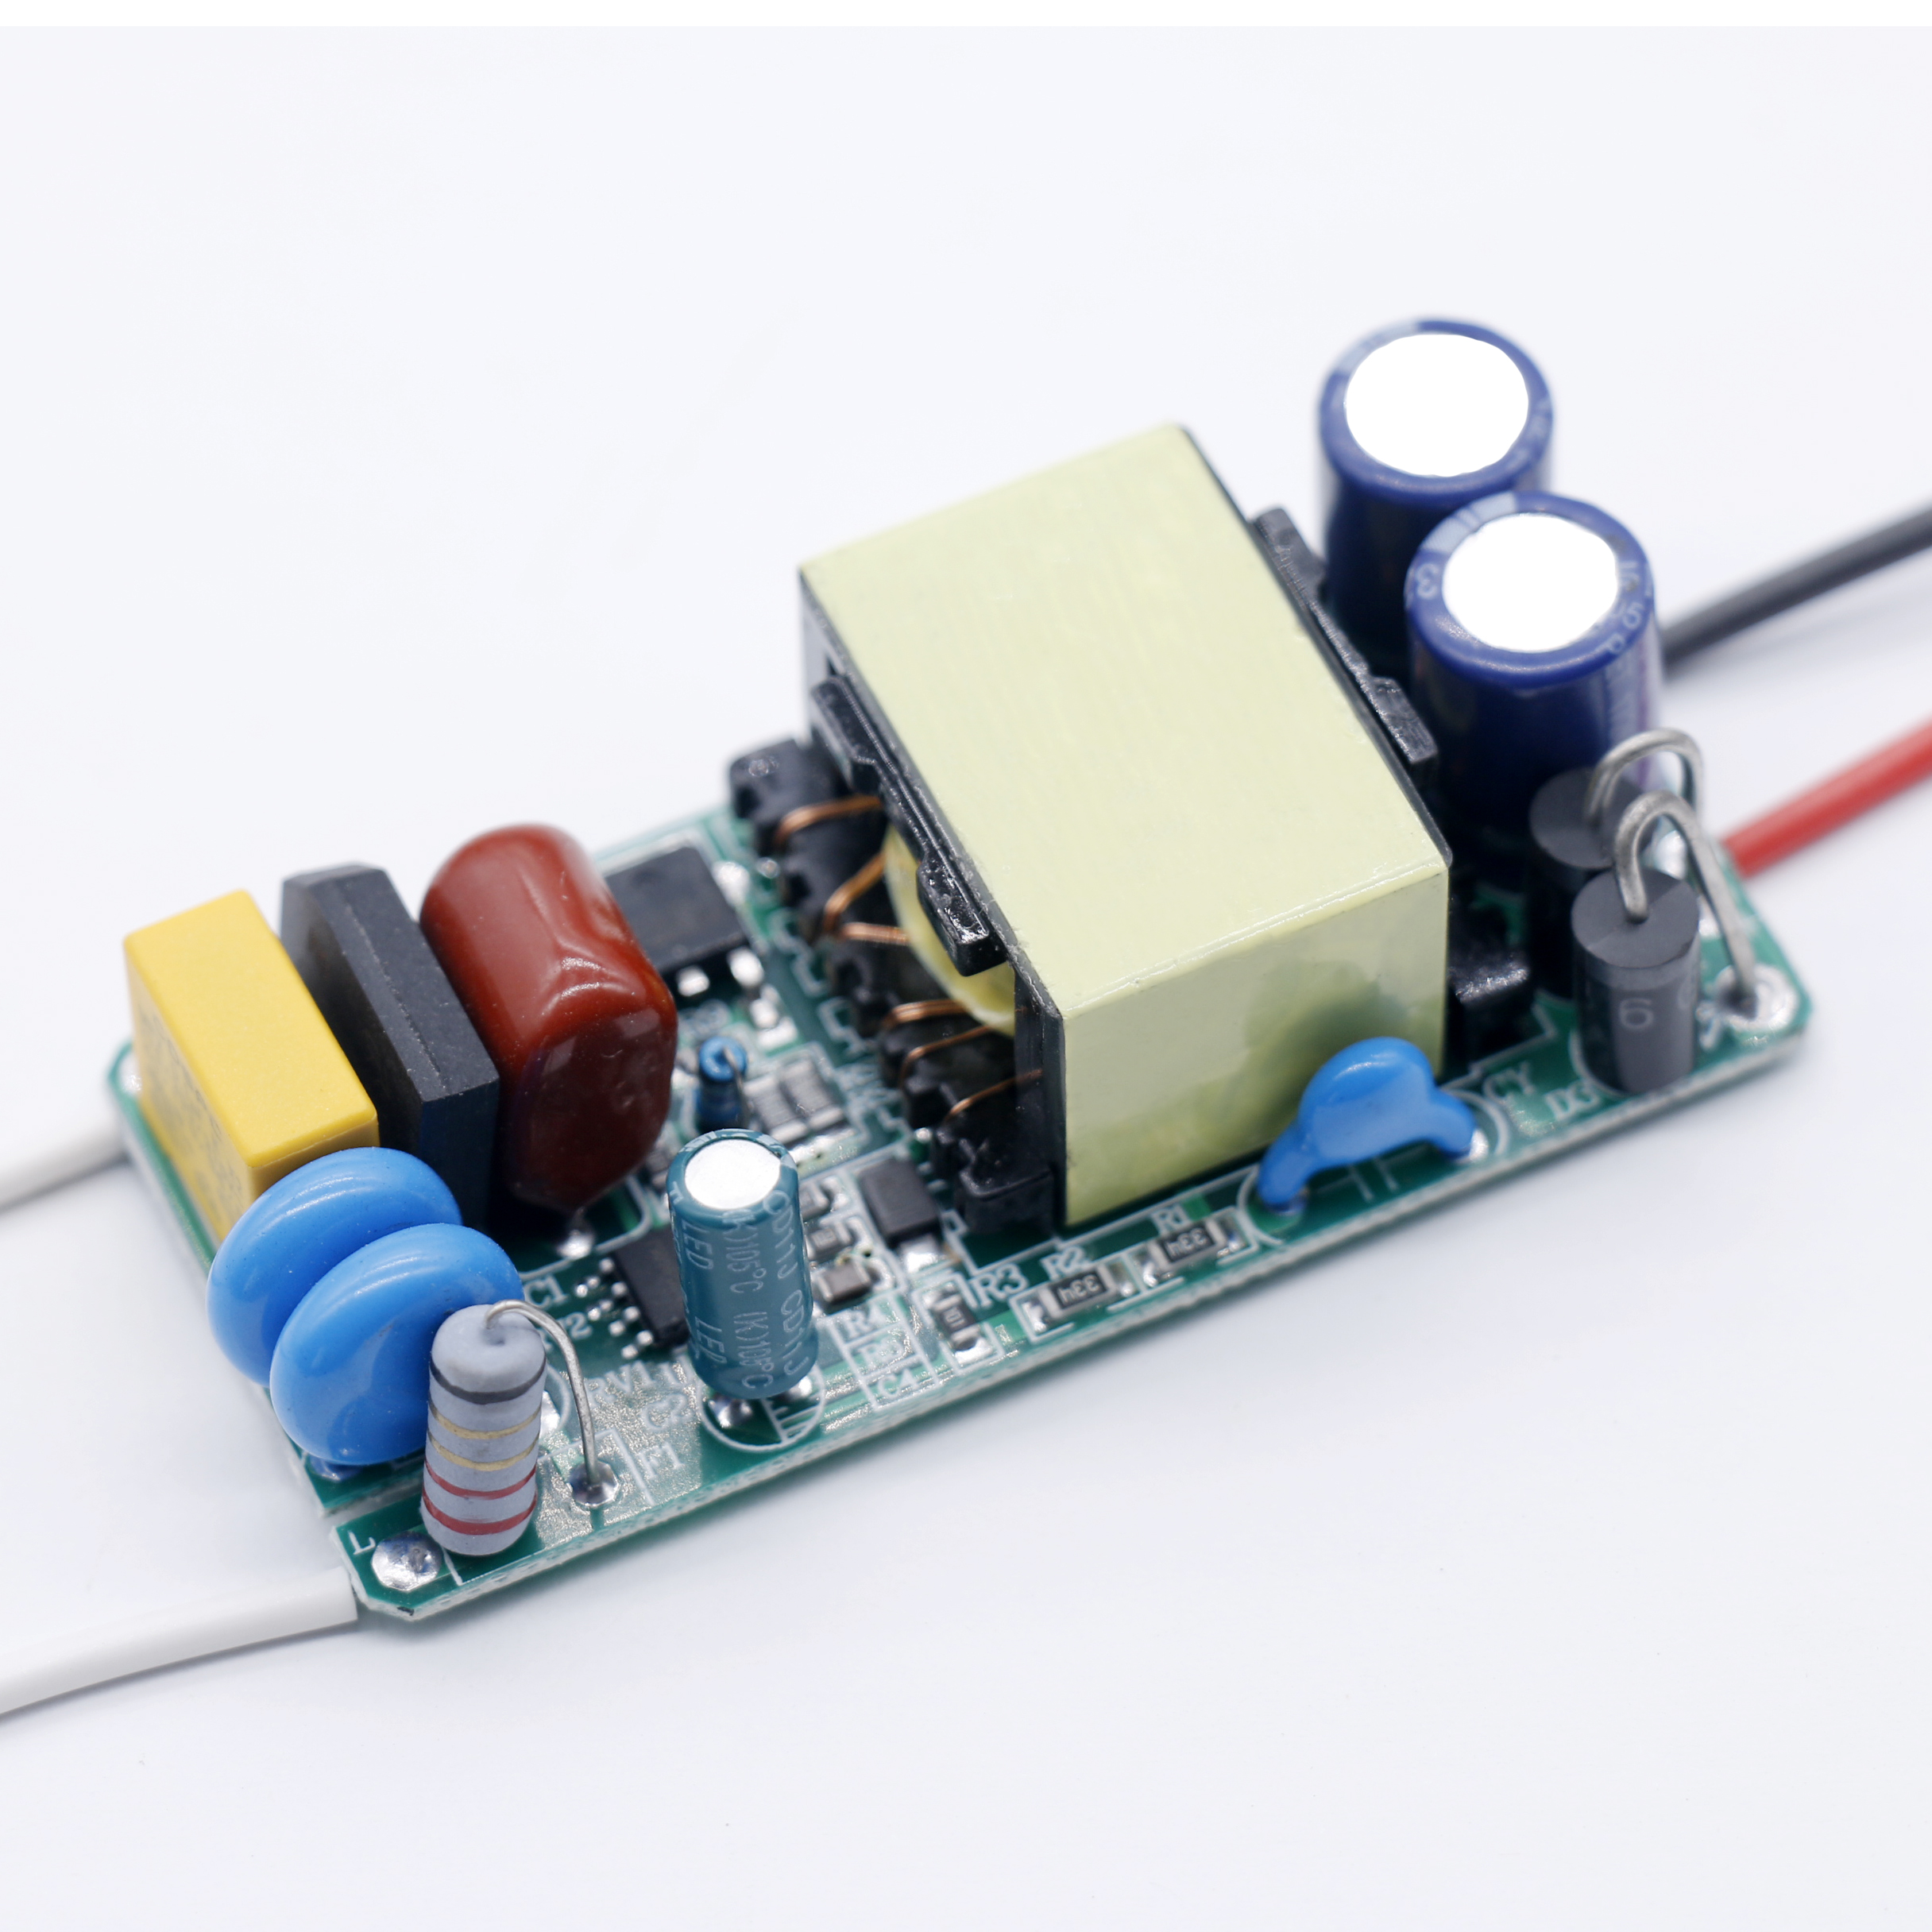 LED Driver 50W 40W 30W 20W 24-36V Power Supply Constant Current Control Lighting Transformers Bare Board For LED Diode Lamp Bead